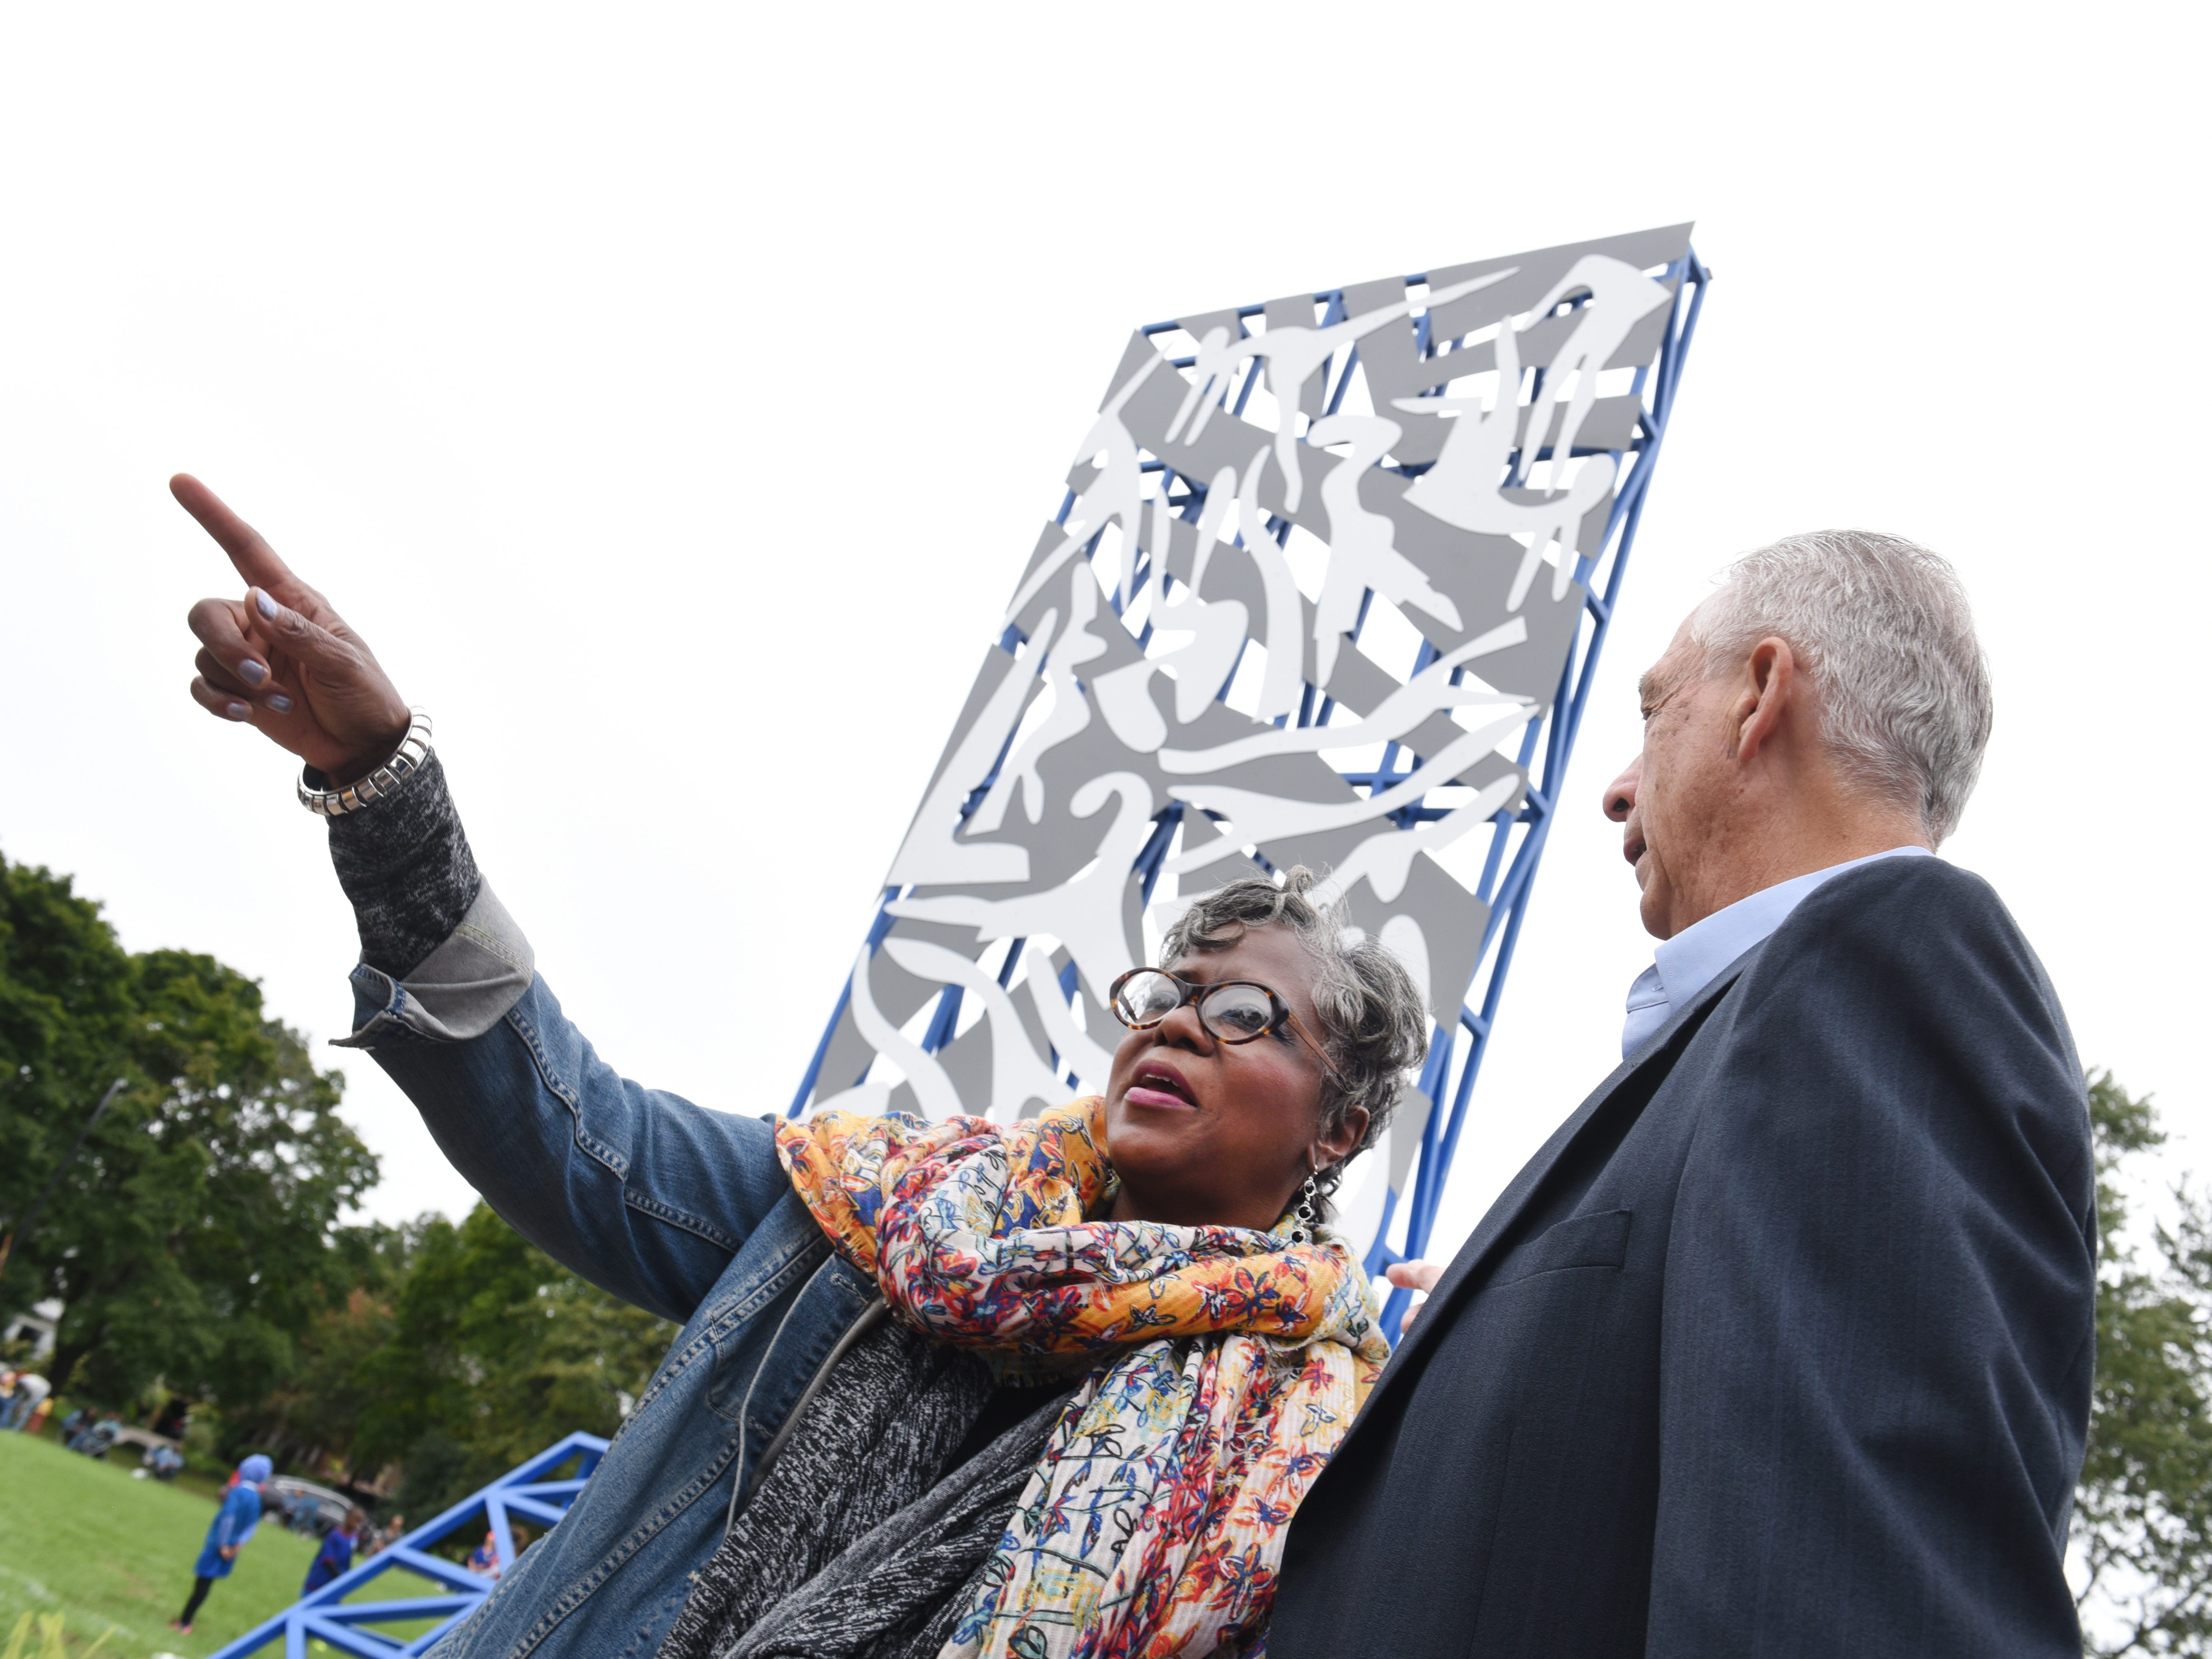 Domeda McCauley, former co-chair for the Great Art Great Park, with Bill Frey, president, North Rosedale Park Community Association, at the newly installed sculpture by renowned artist Charles McGee at The North Rosedale Park Community House.